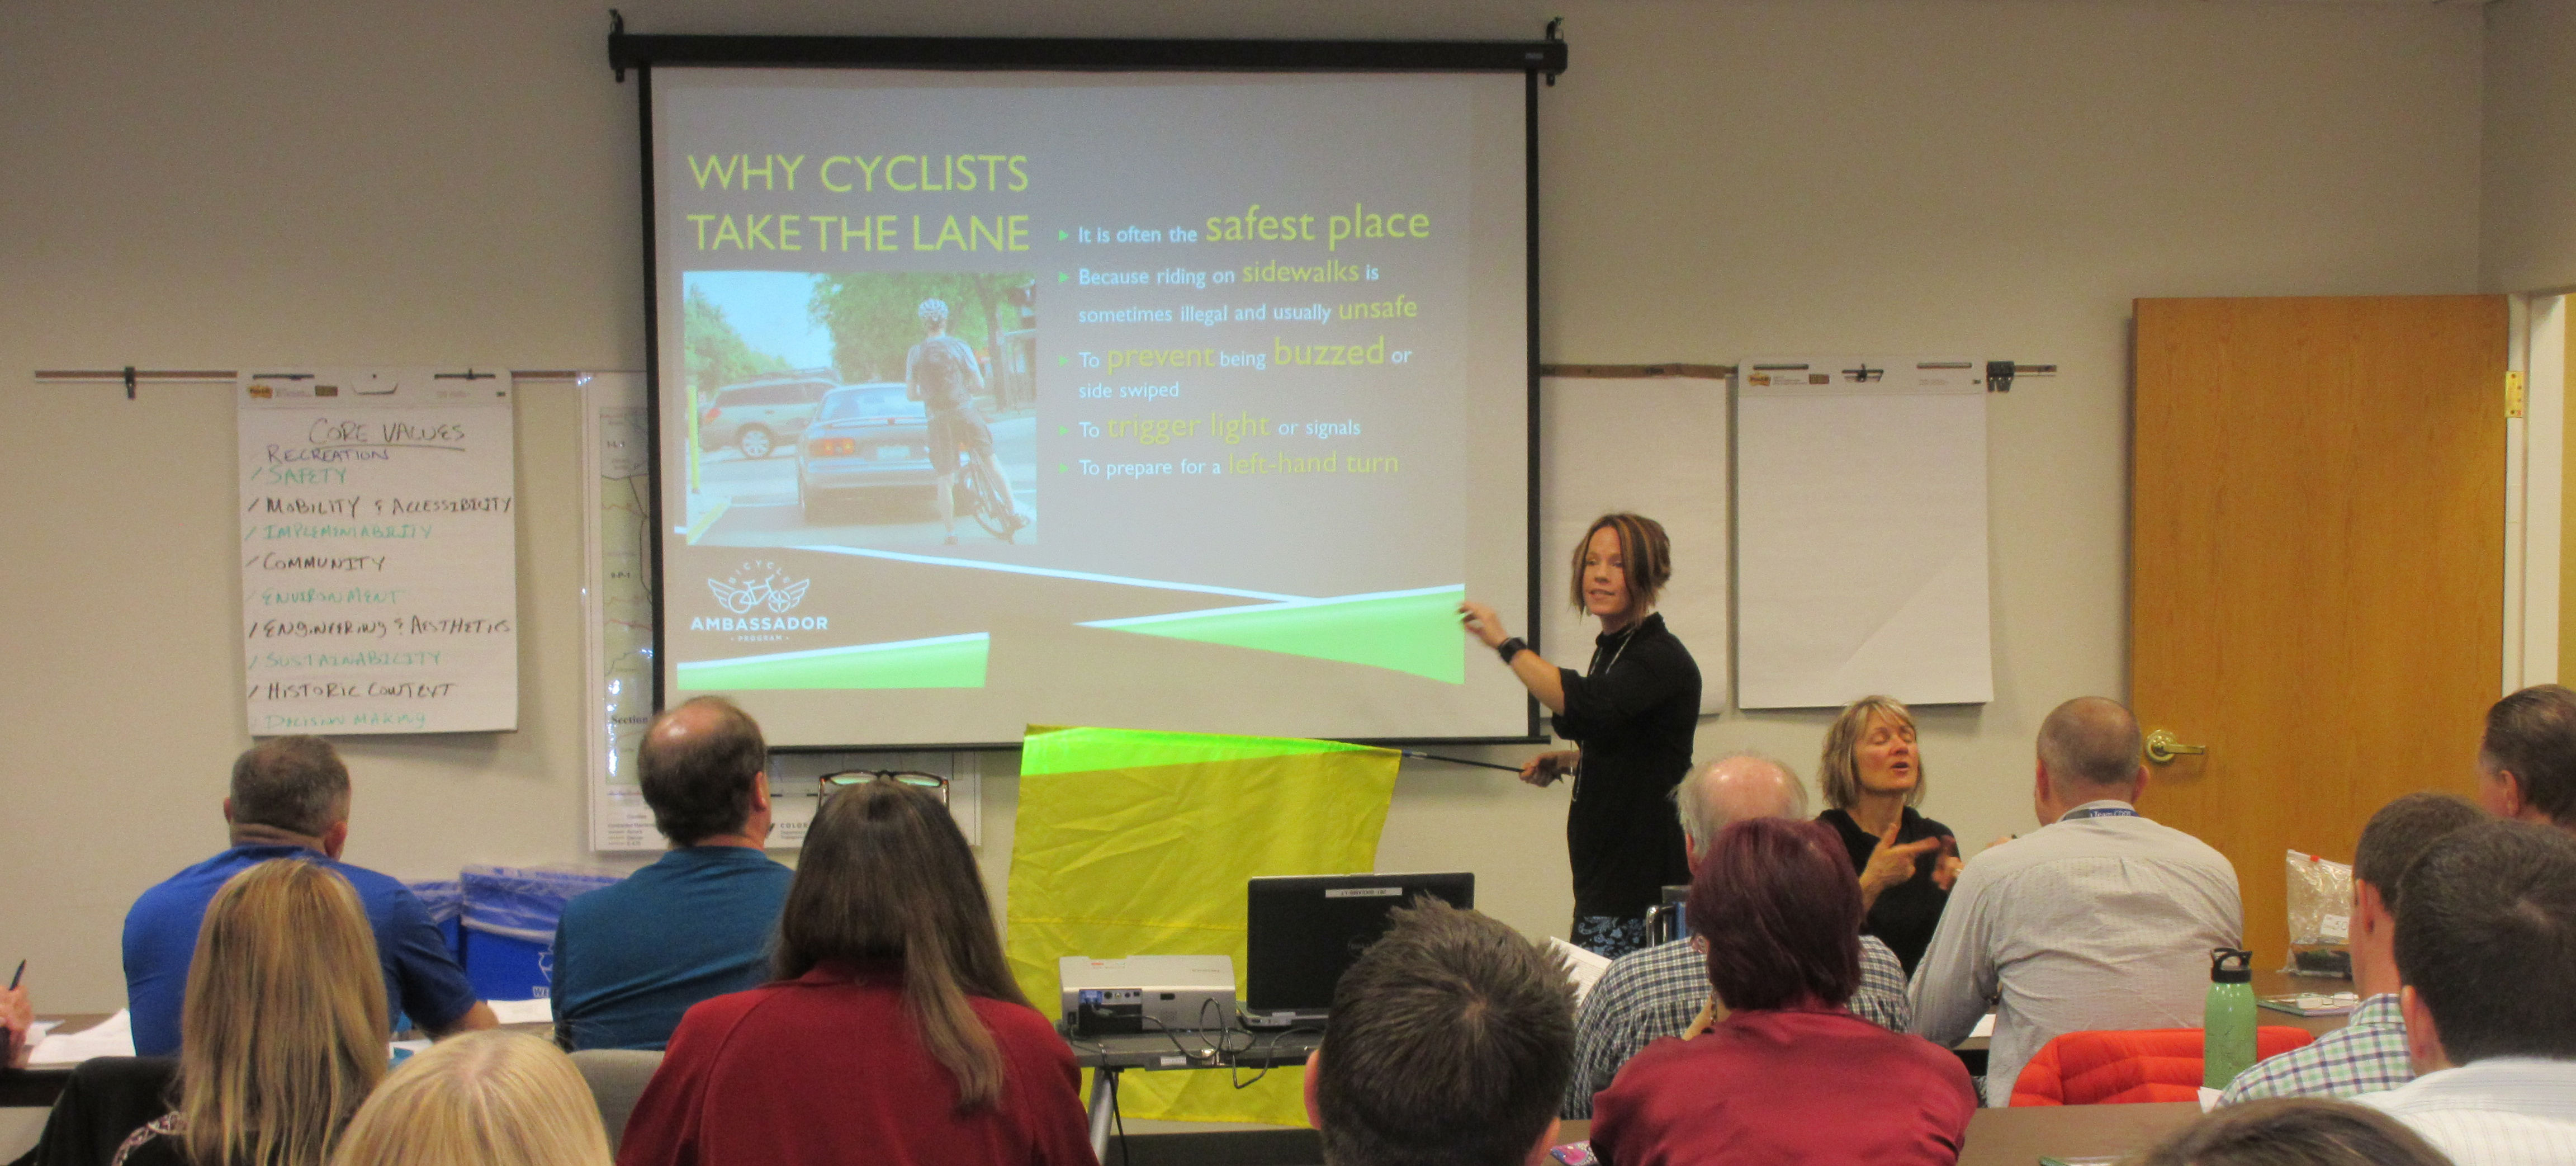 Jamie Gaskill-Fox leads Bicycle Friendly Driver training